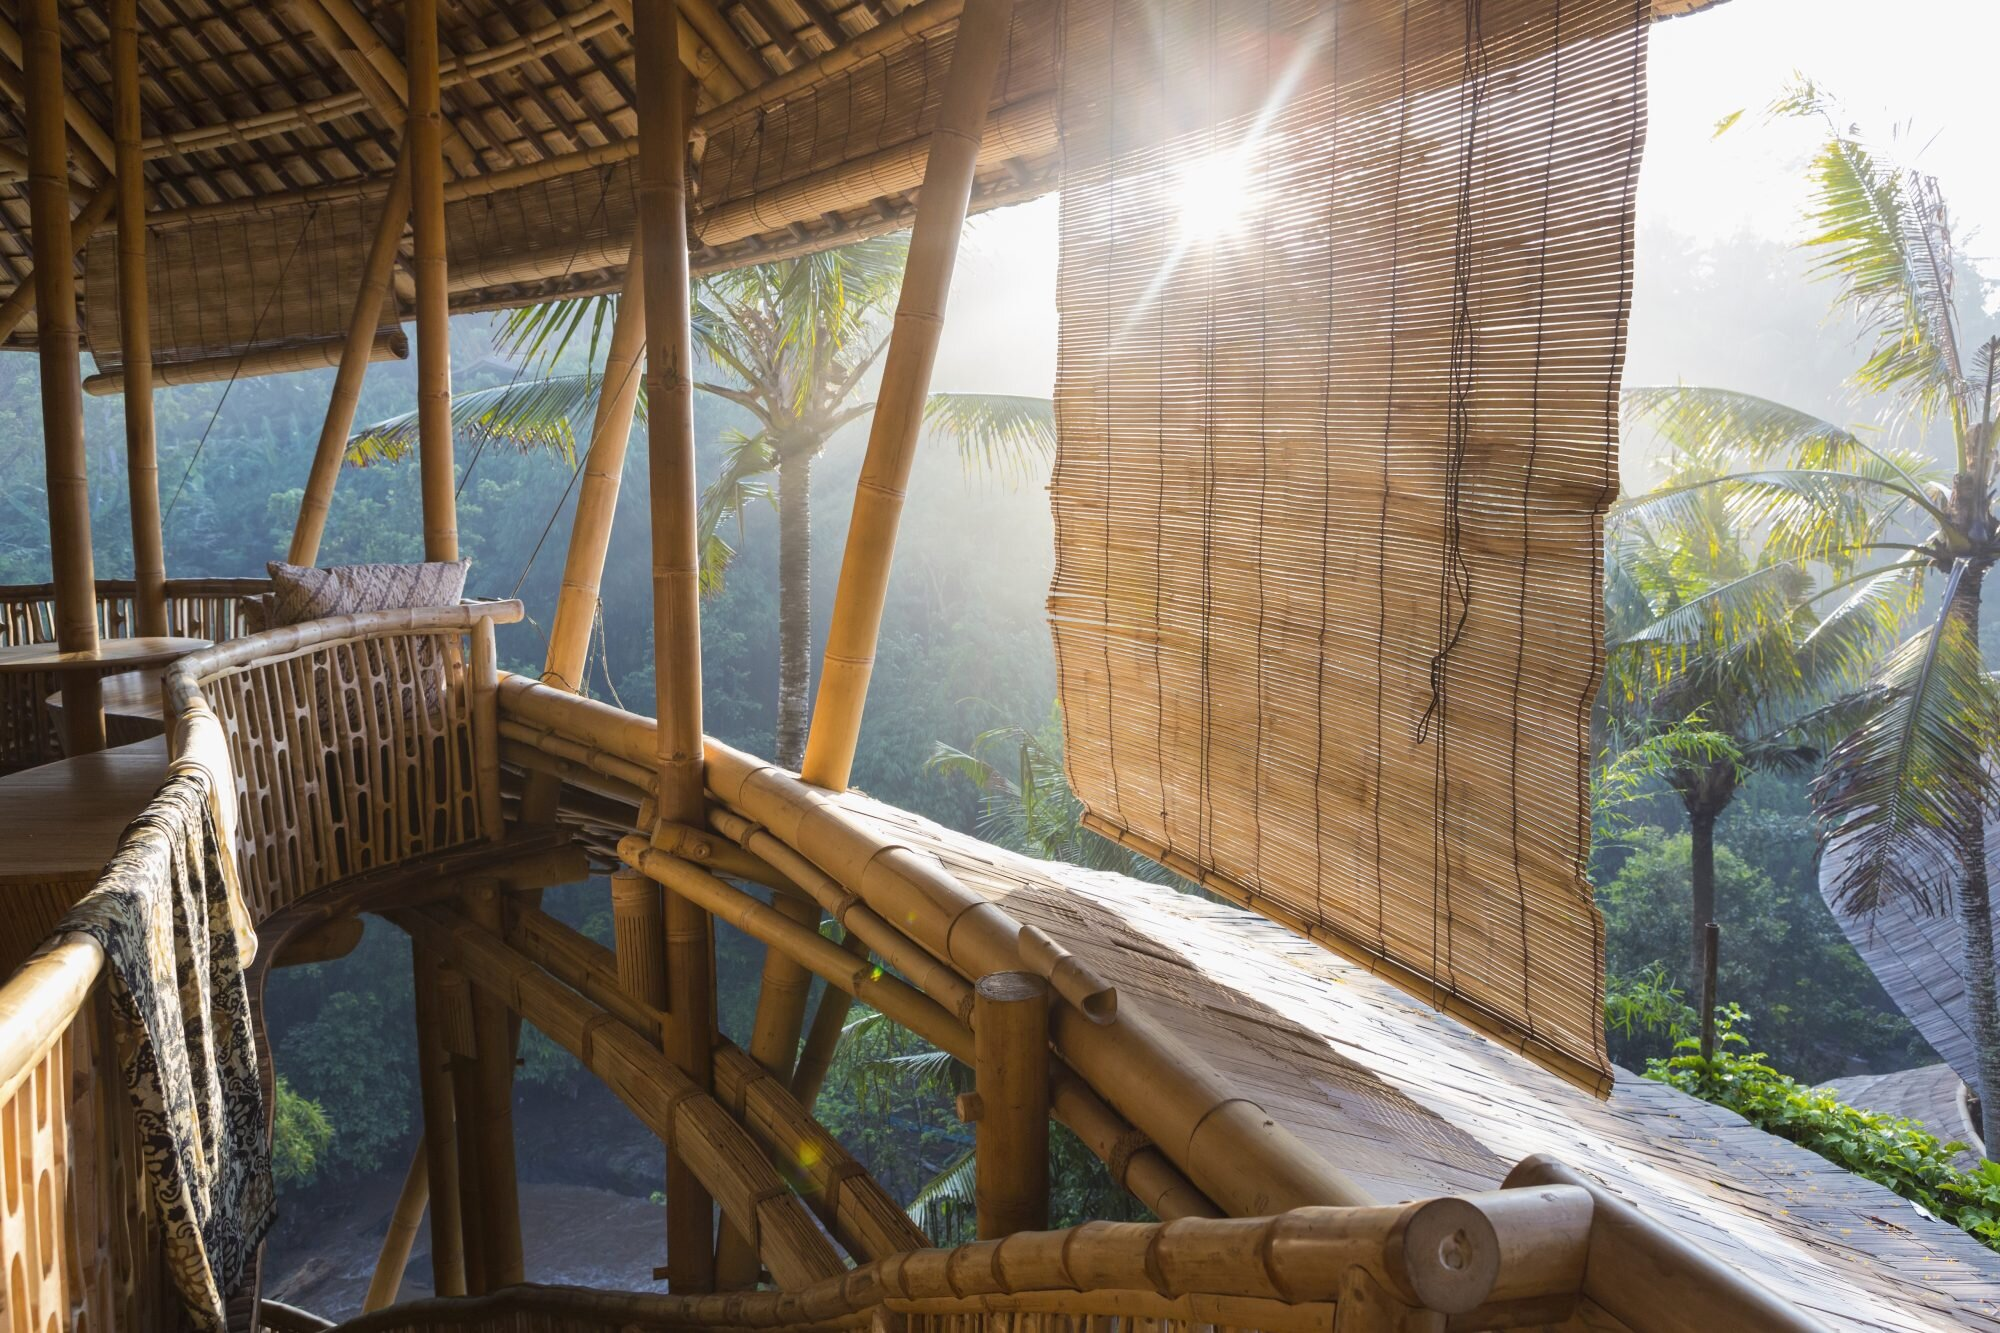 Treehouse Hotels To Visit In The U S Martha Stewart